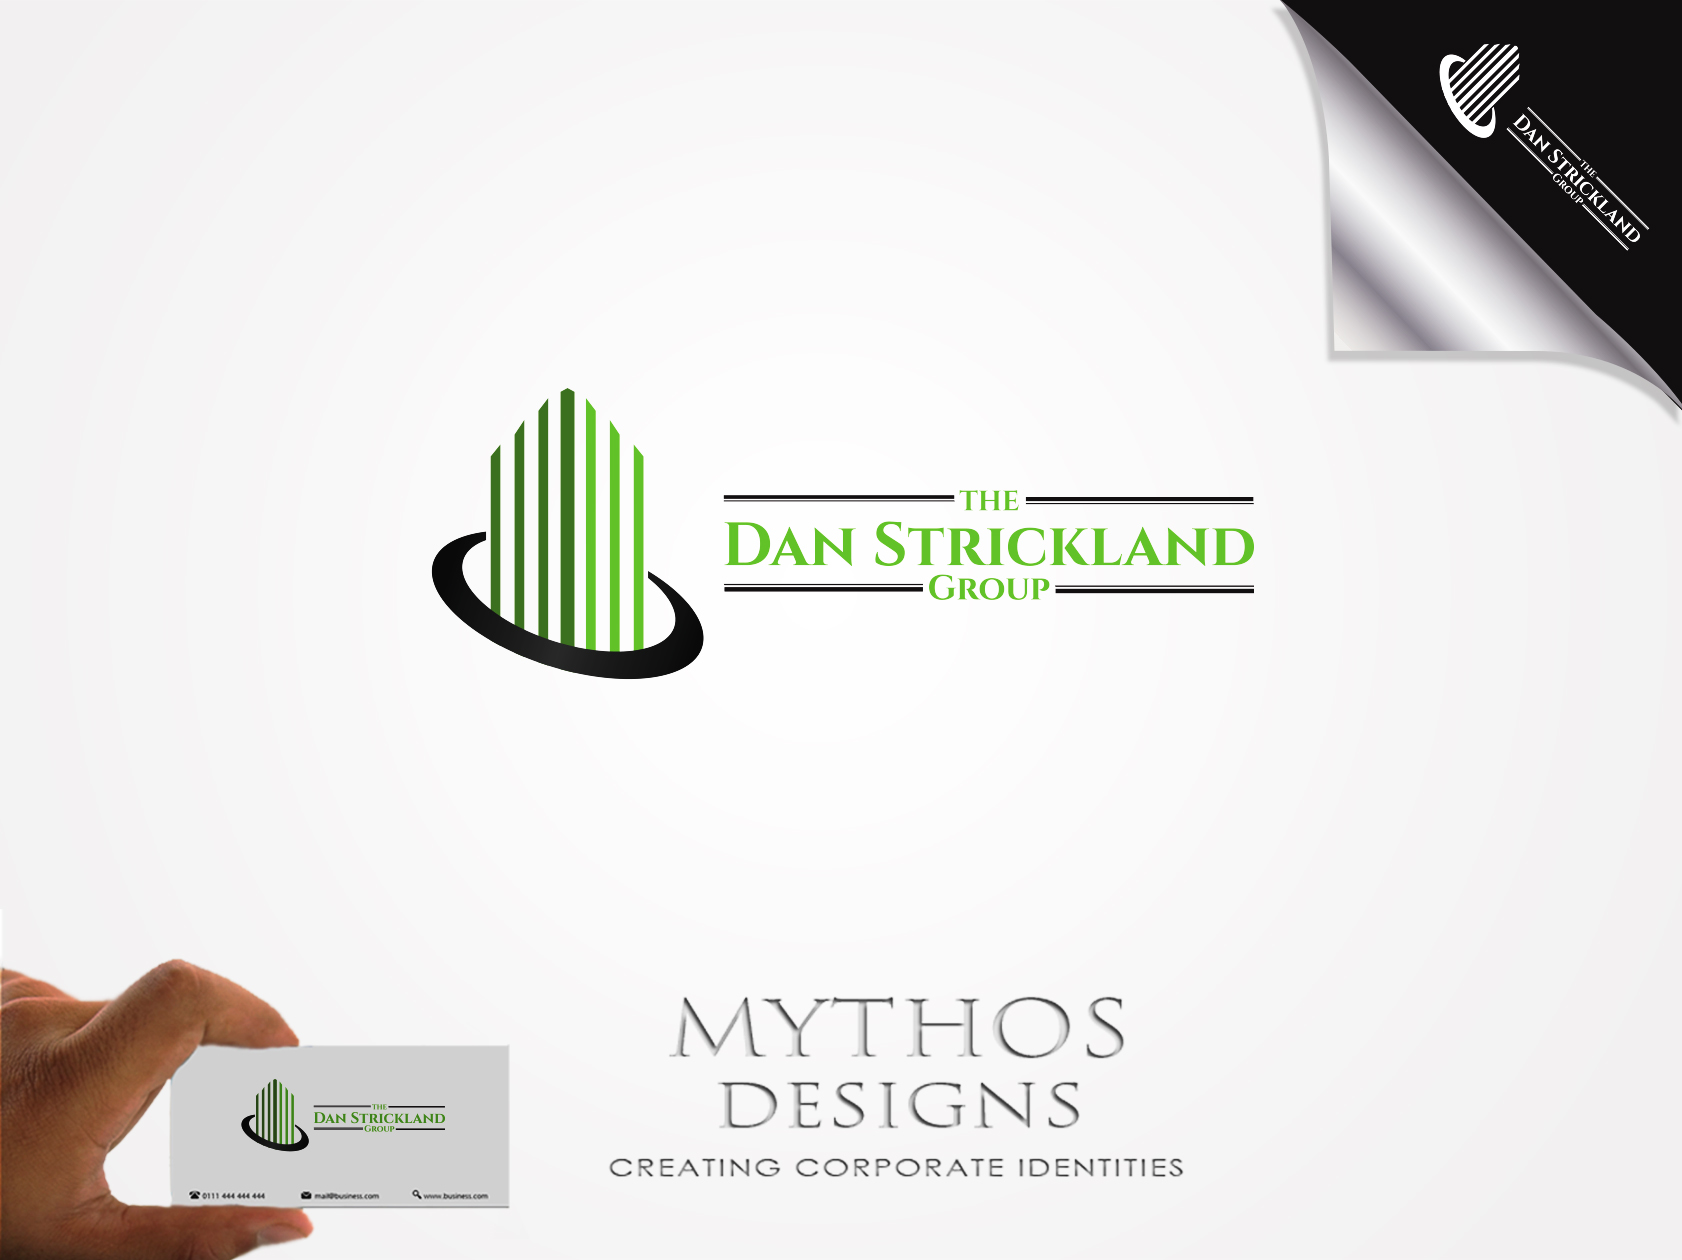 Logo Design by Mythos Designs - Entry No. 112 in the Logo Design Contest Creative Logo Design for The Dan Strickland Group.